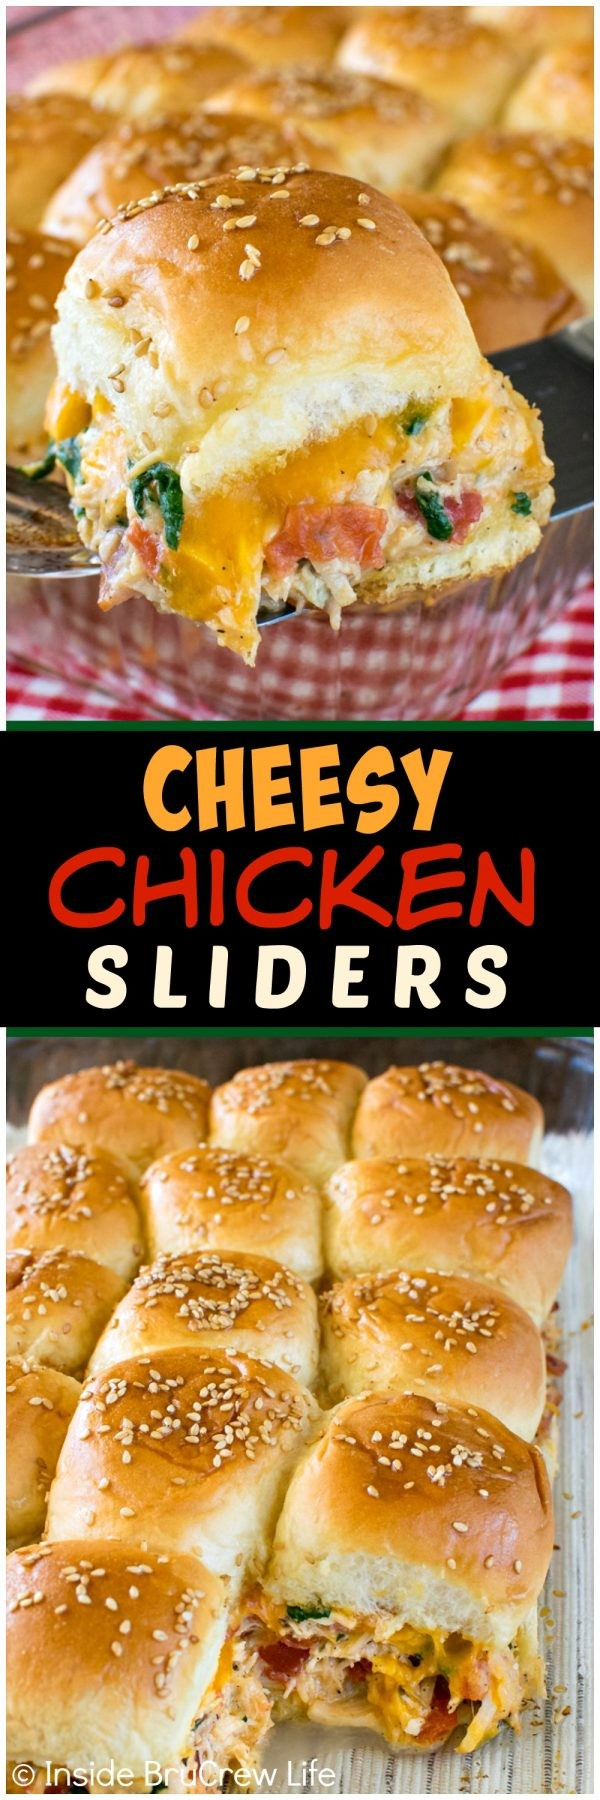 Cheesy Chicken Sliders - these easy dinner rolls are loaded with veggies, cheese, & meat. Great recipe for busy school nights or game day parties!